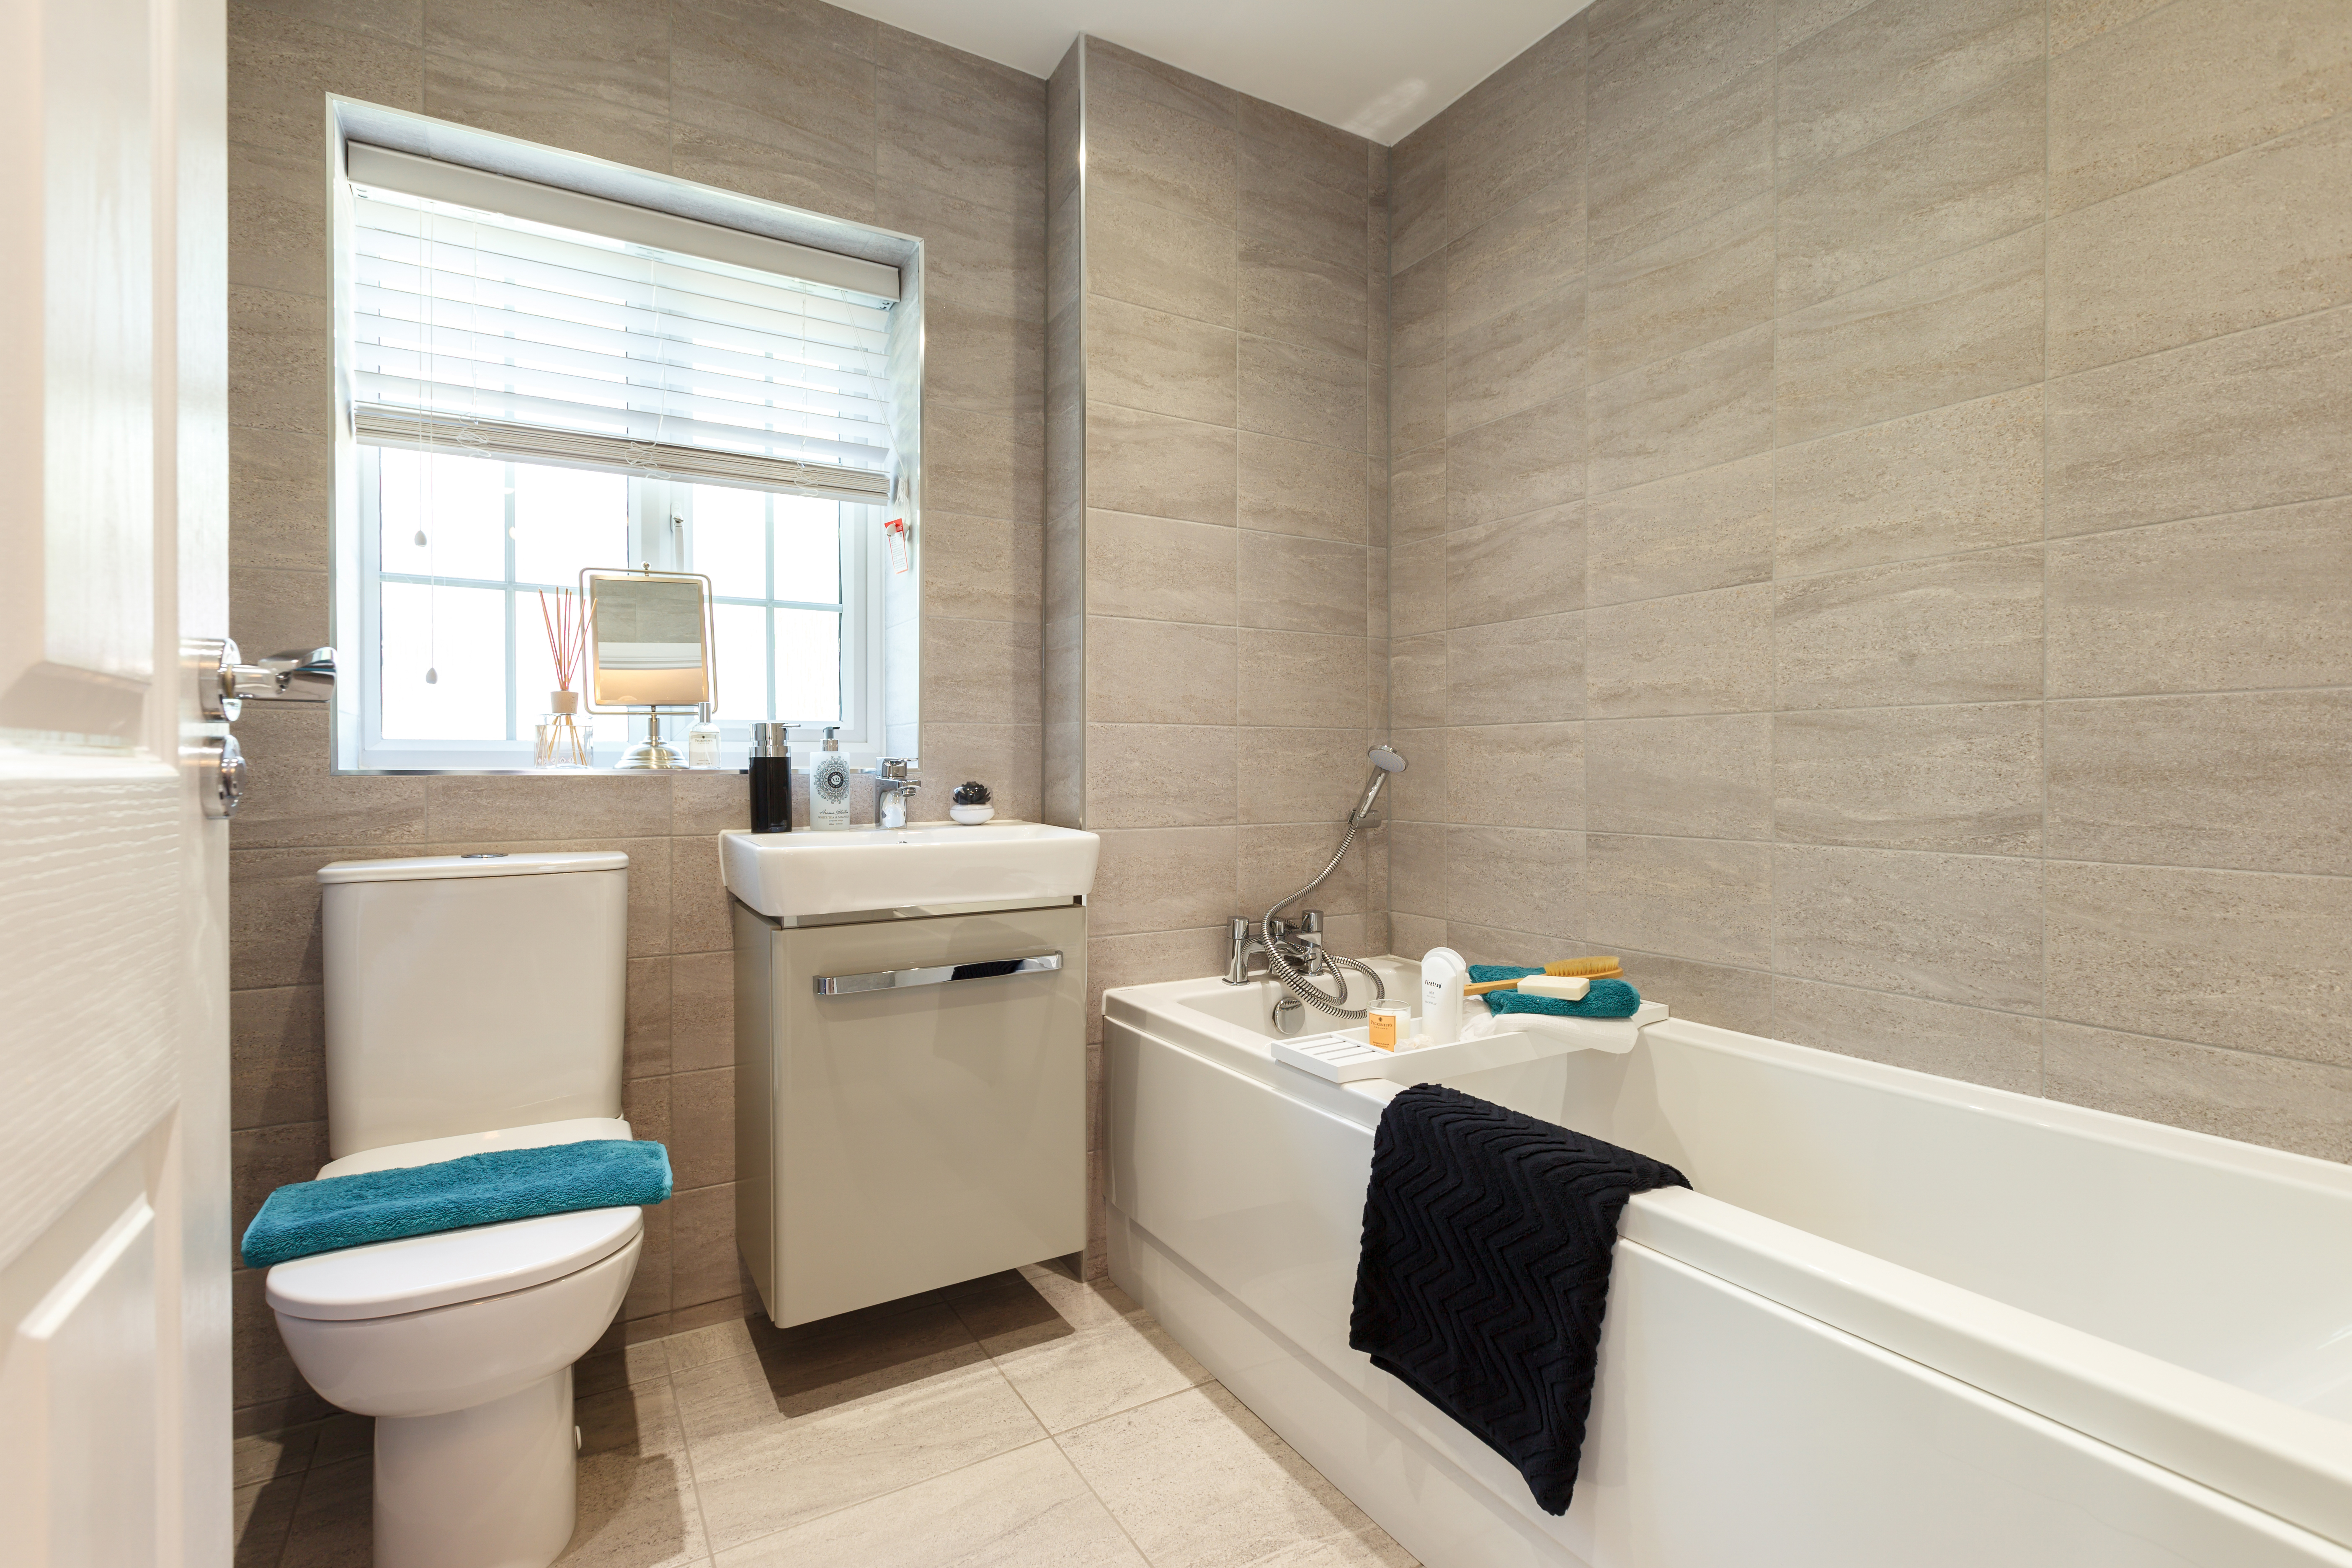 TW_YO_Hunloke Grove_Kentdale_Bathroom (1)